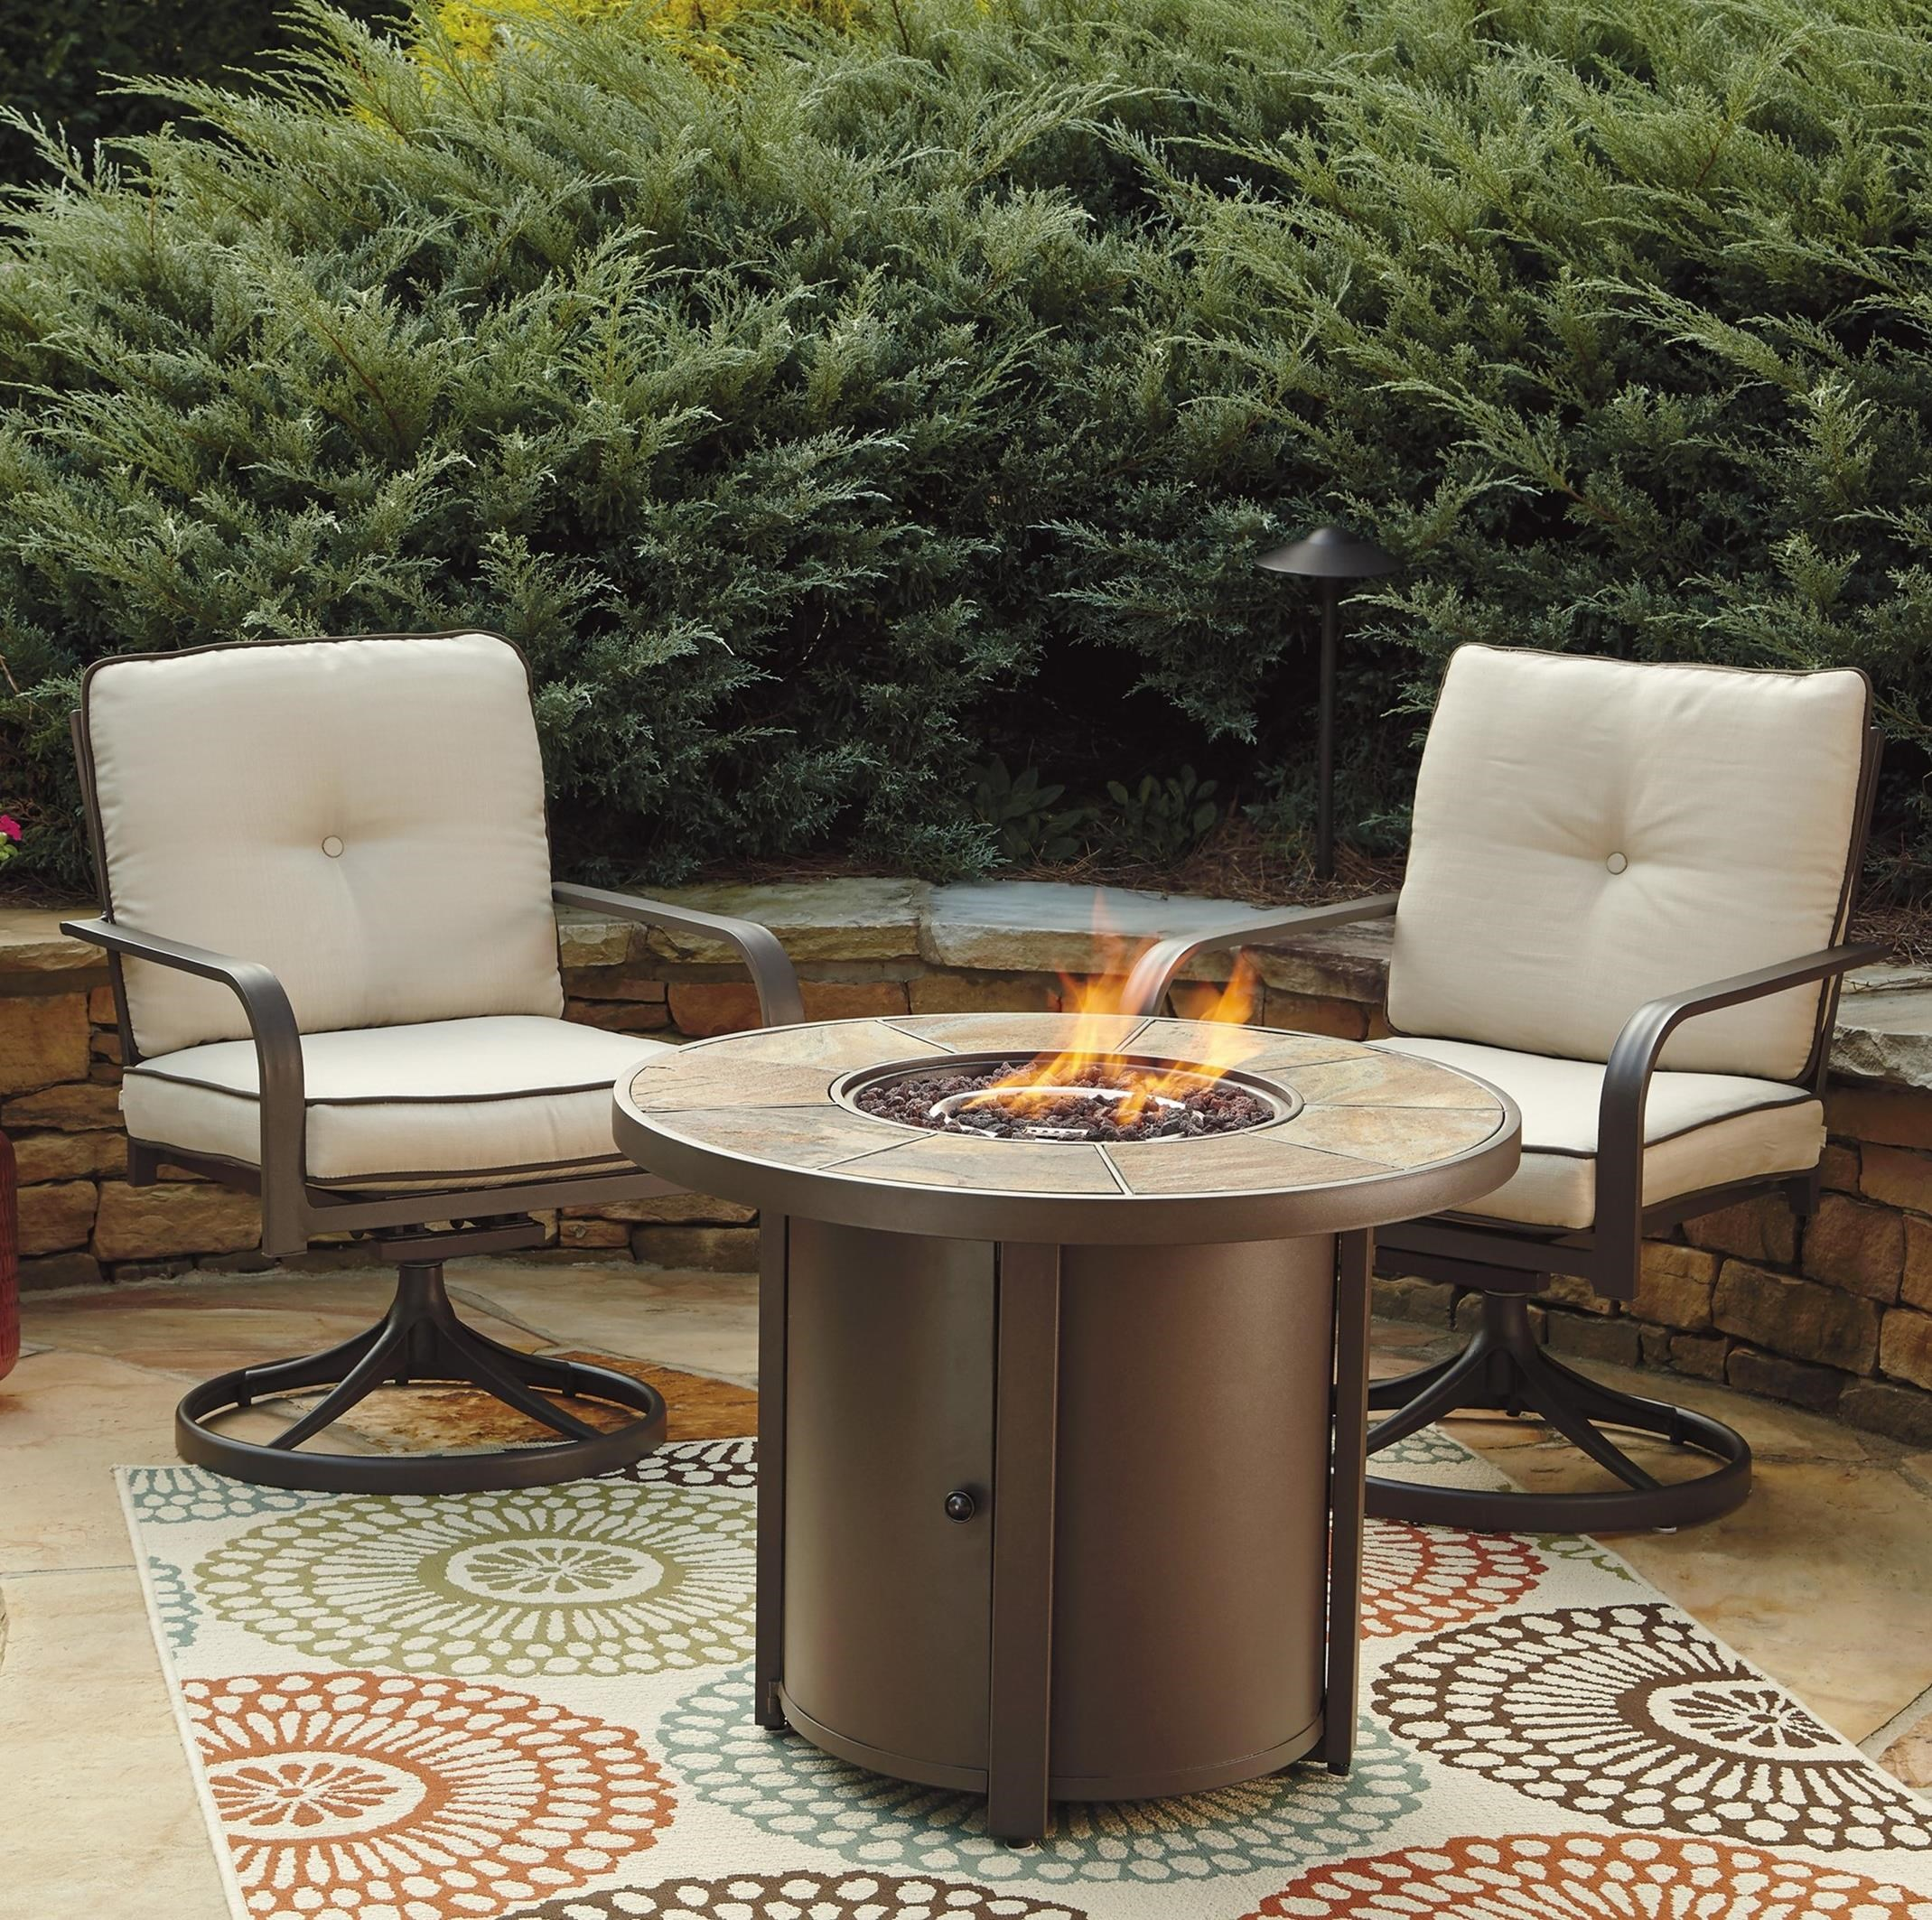 3 Piece Round Fire Pit Table Set w Swivel Lounge Chairs by